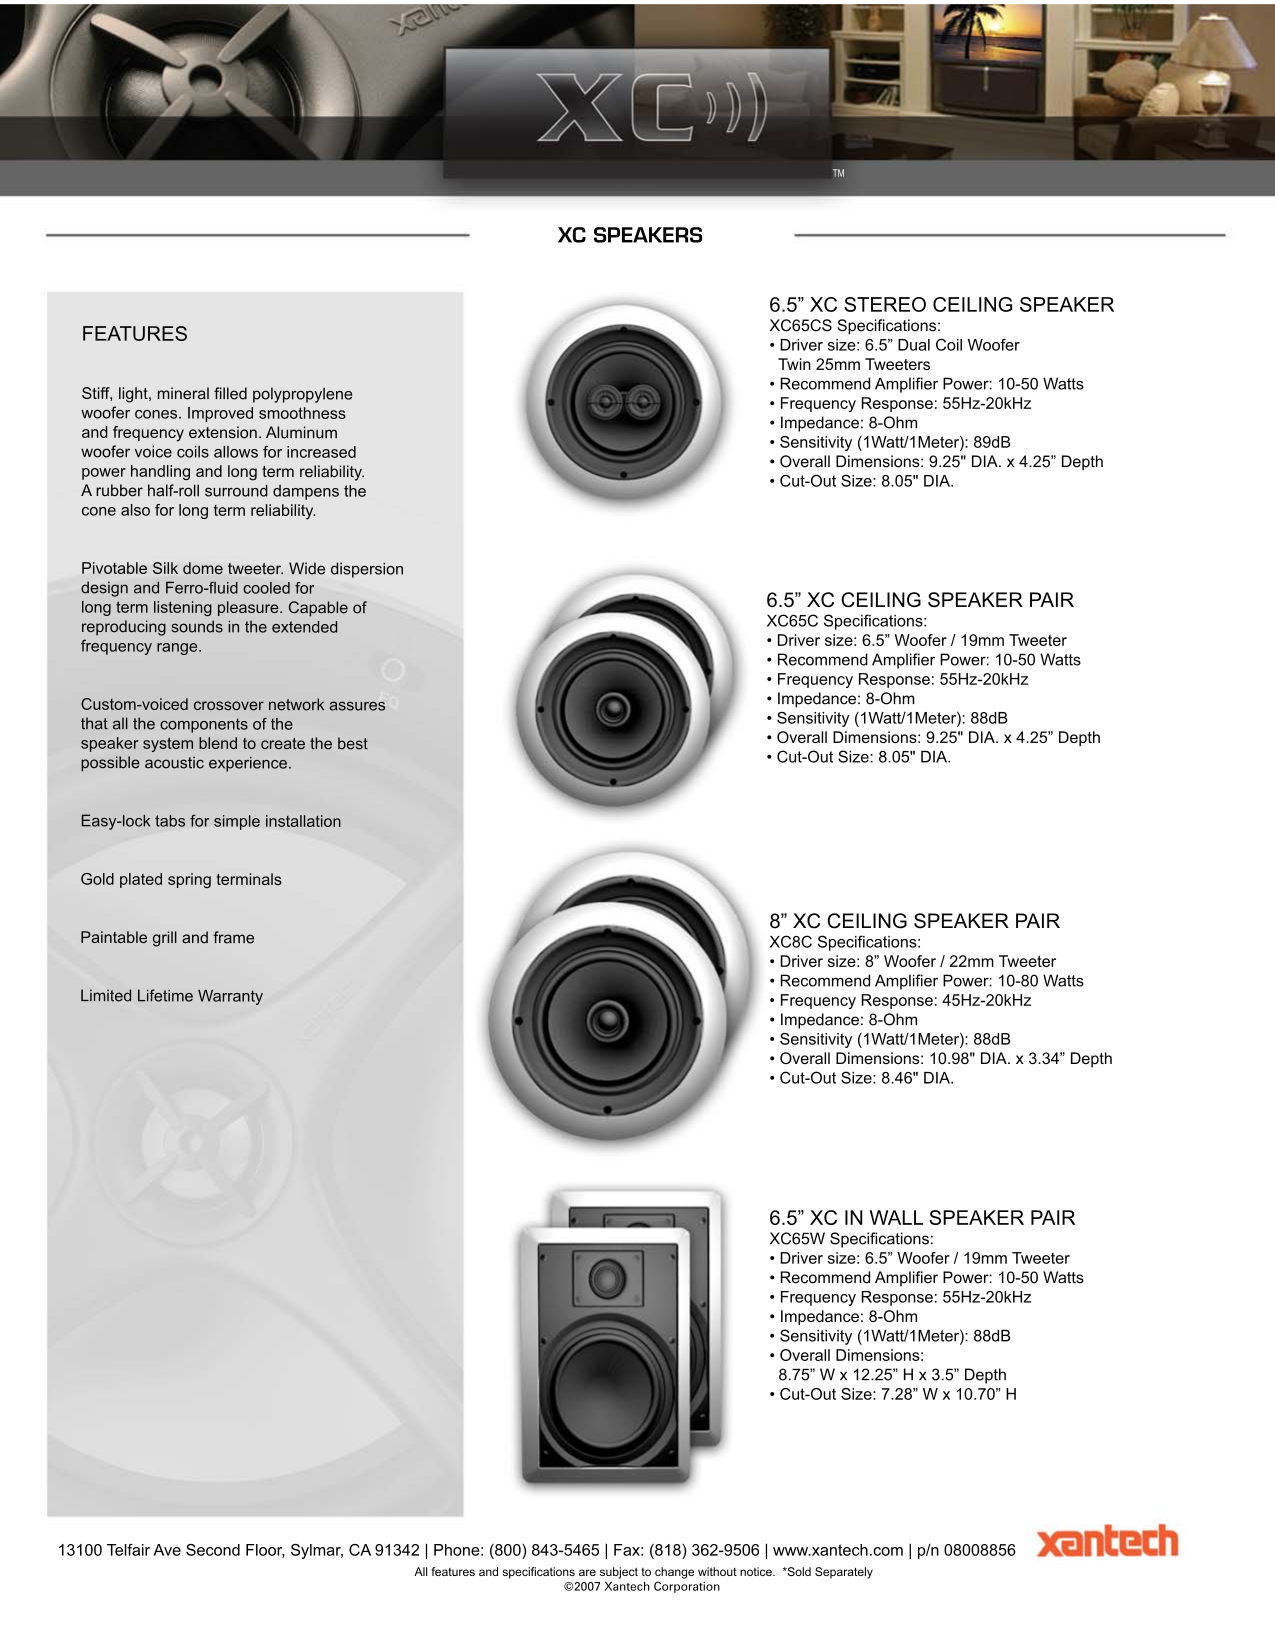 pdf for Xantech Speaker XC65W manual